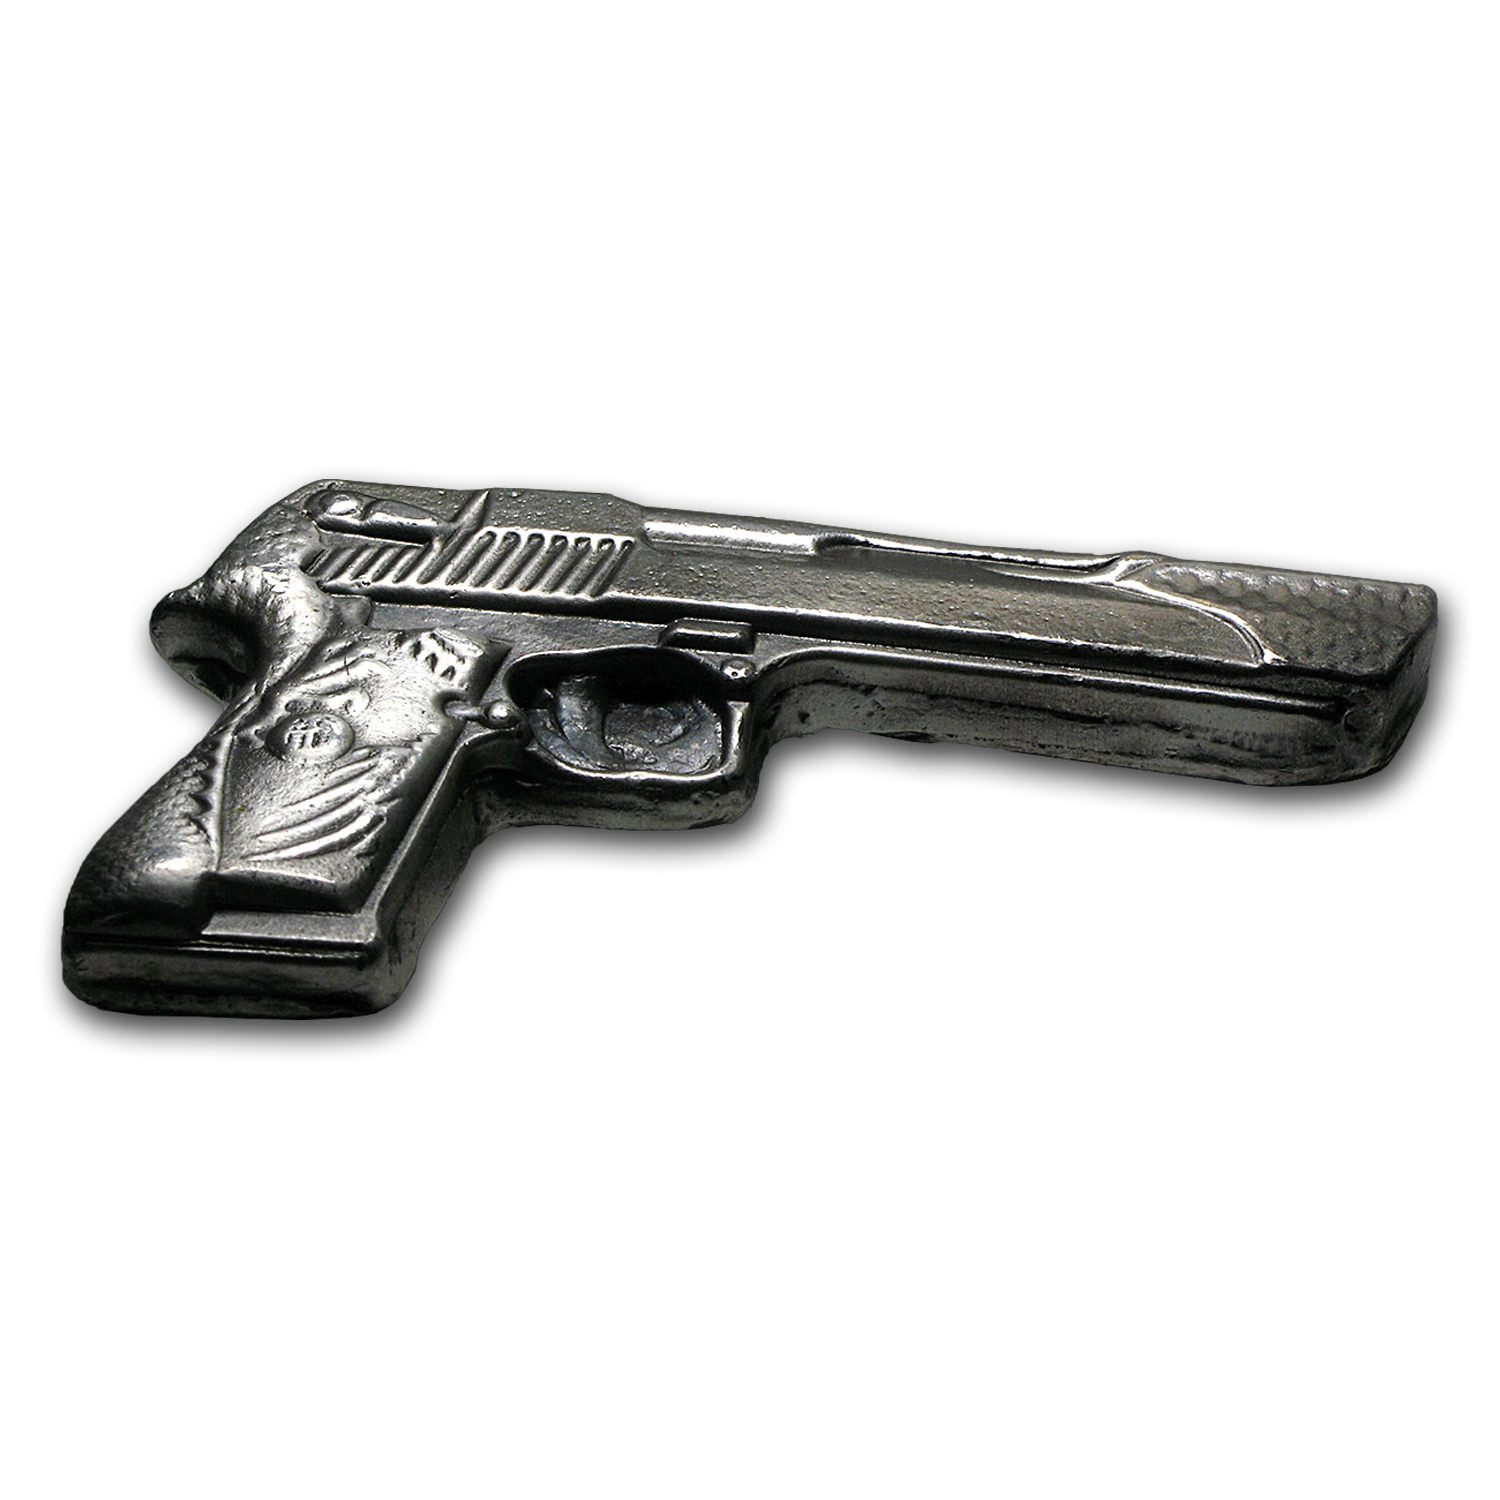 5 oz Silver Desert Eagle Gun - Bison Bullion